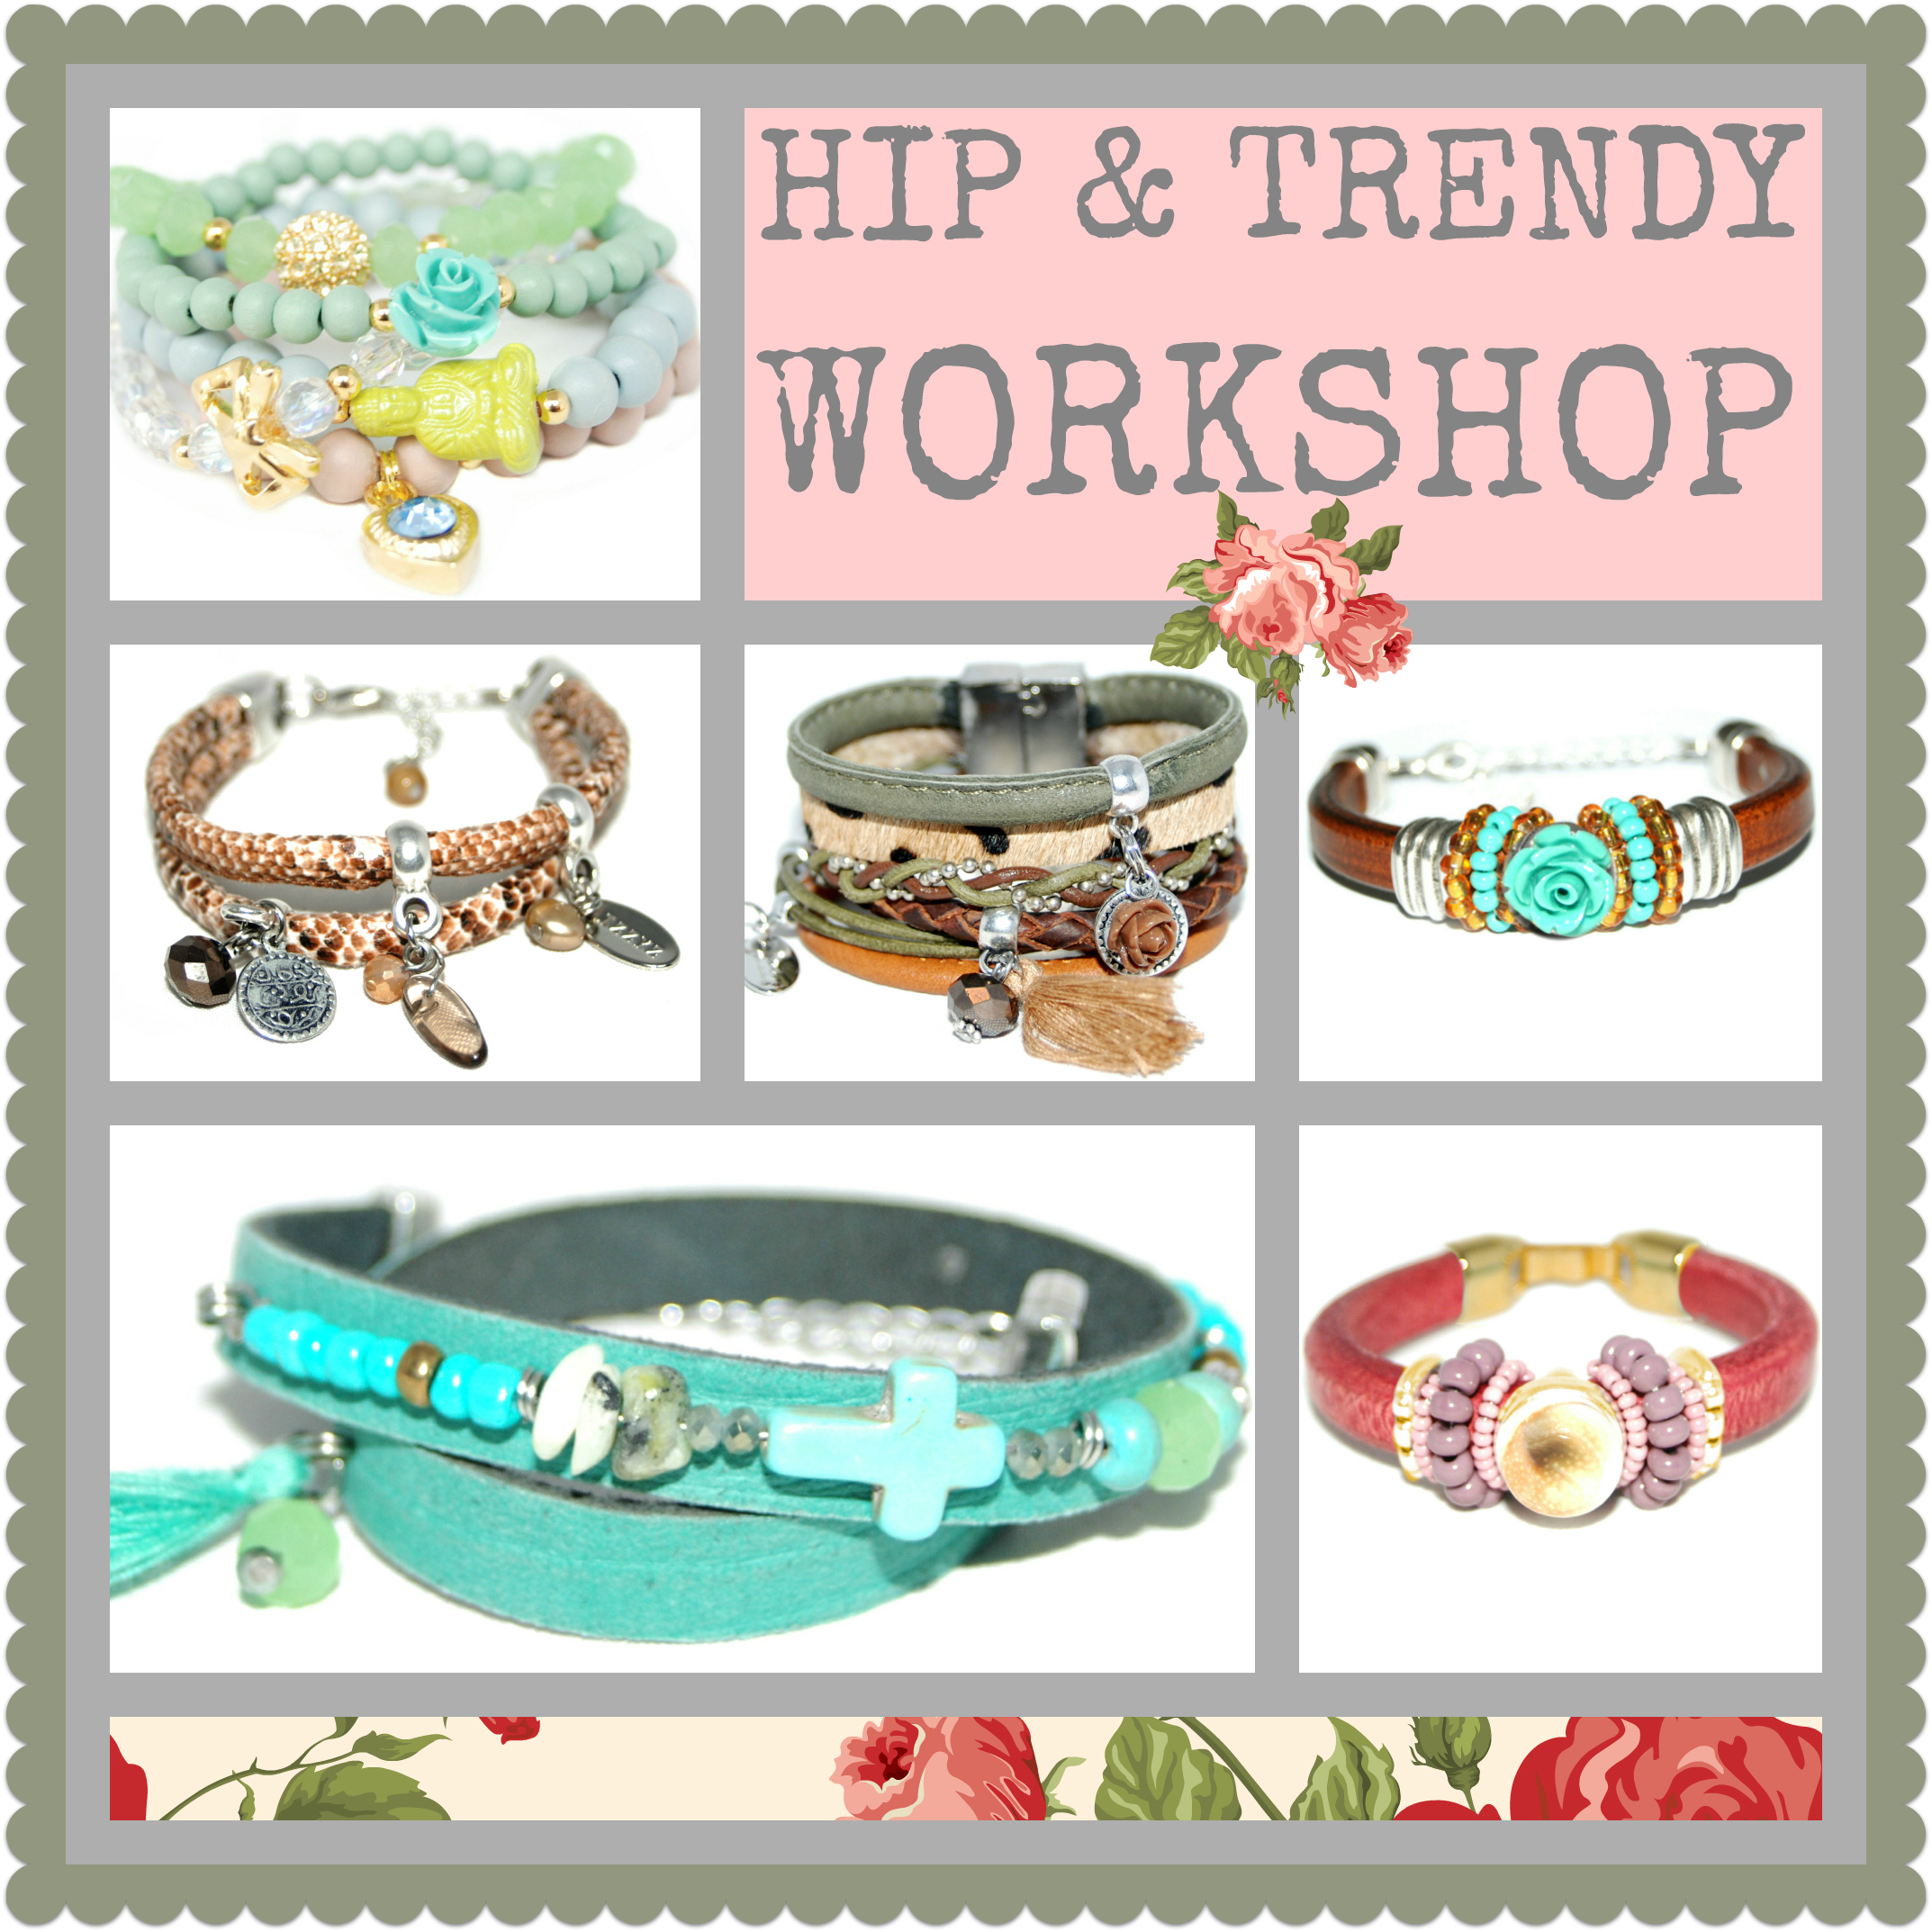 HIP & TRENDY WORKSHOP